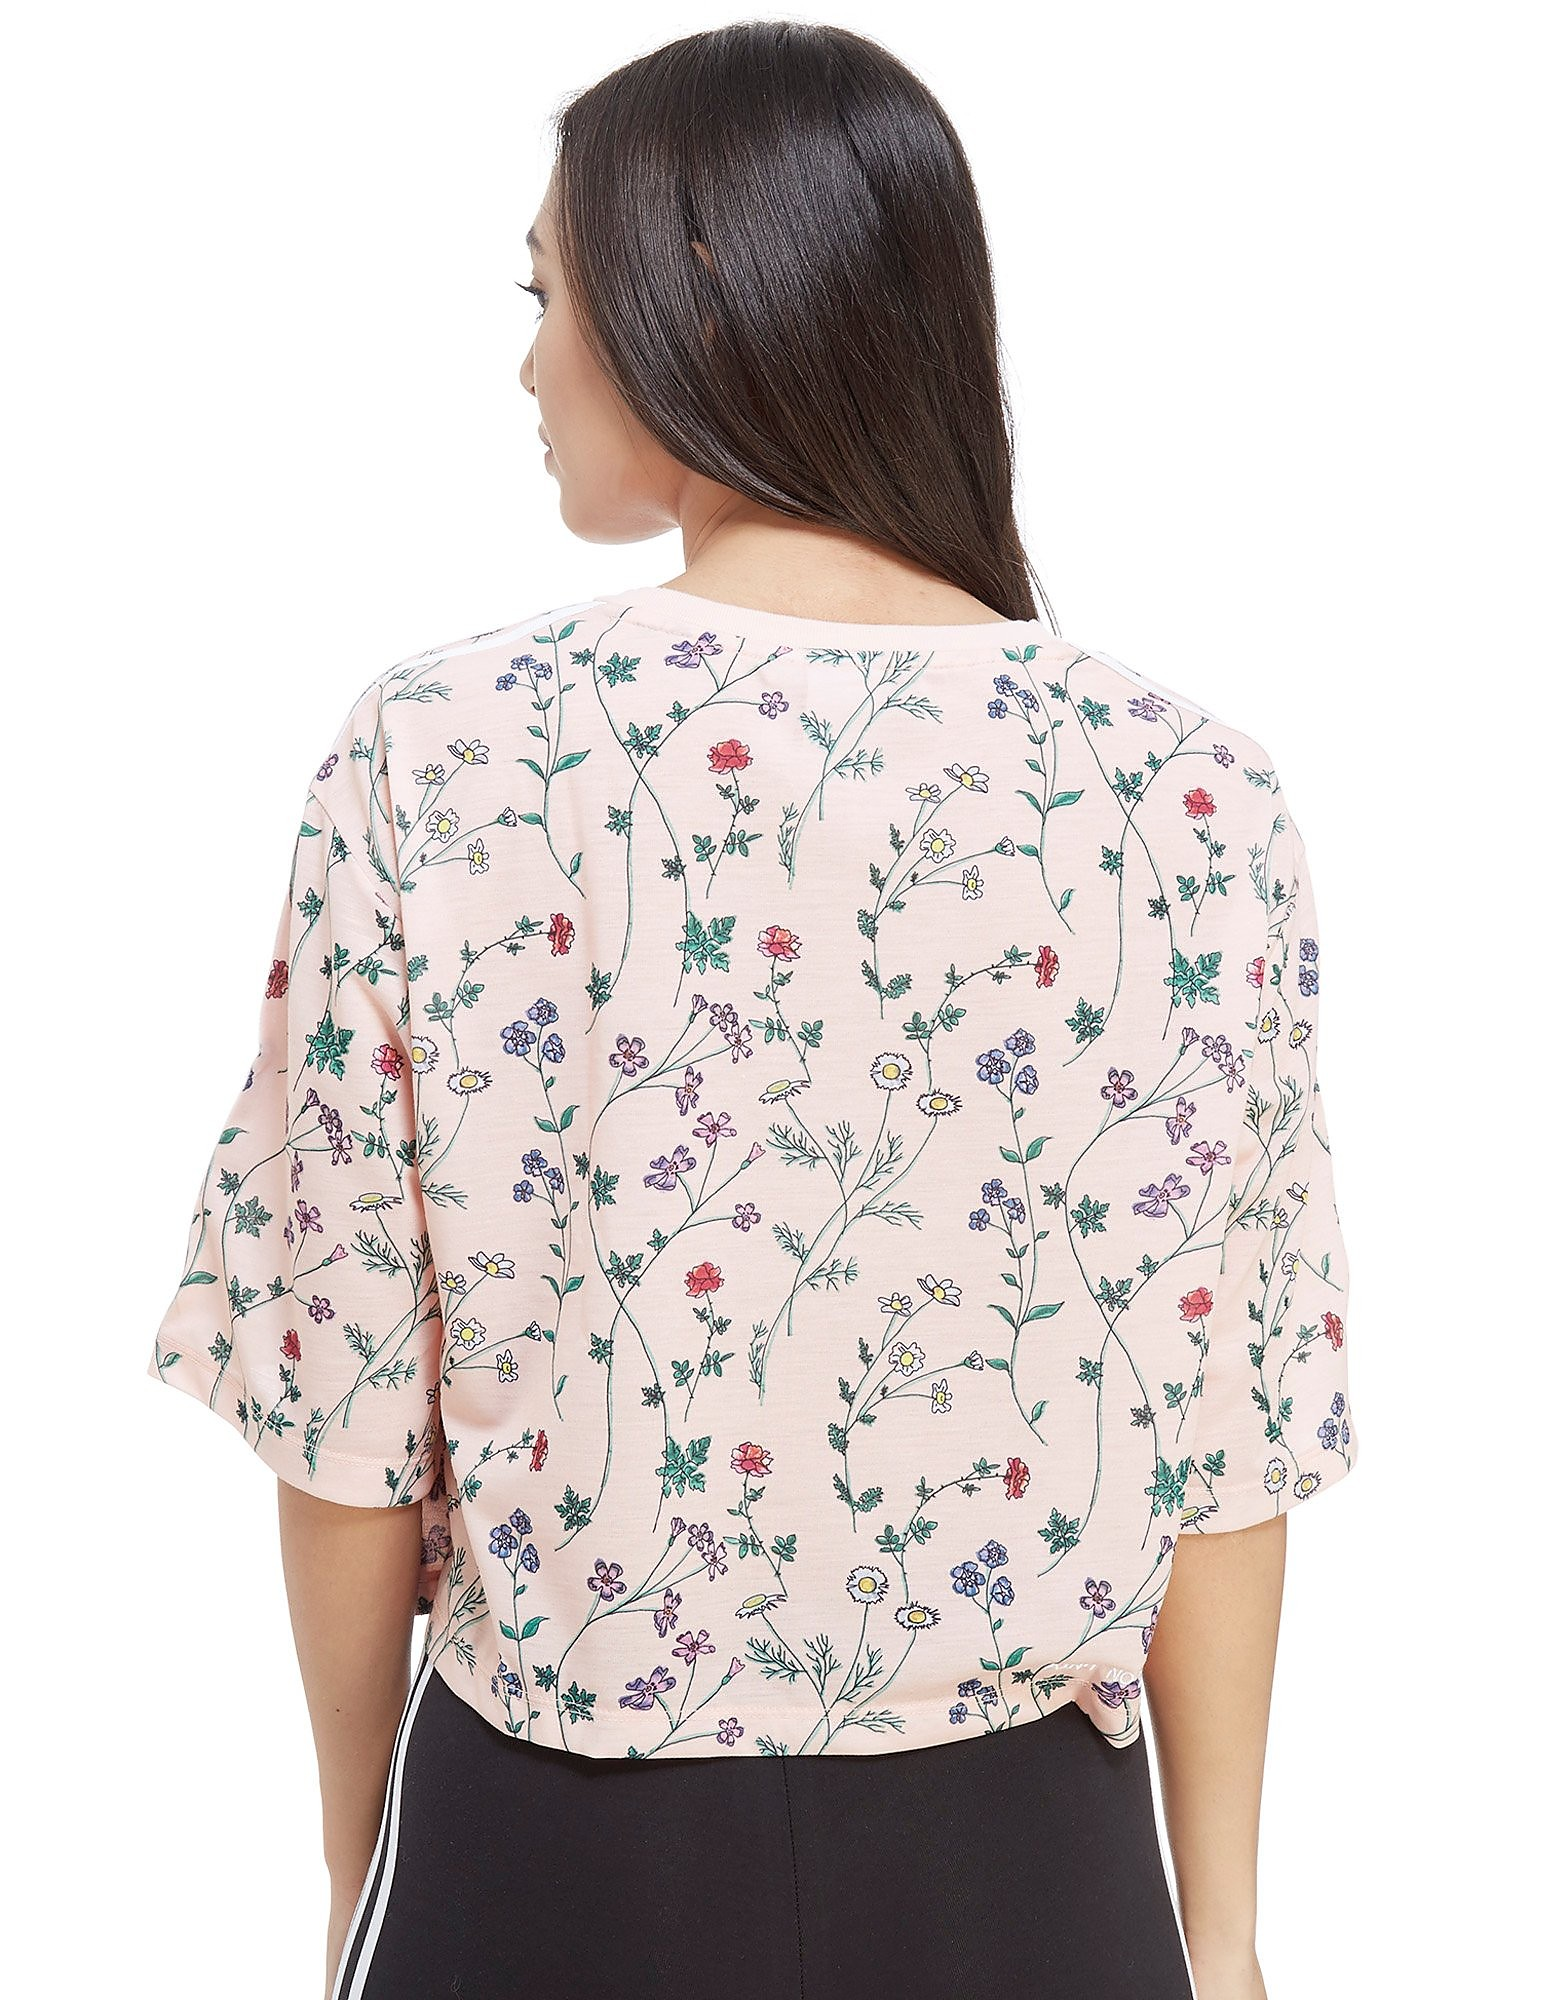 adidas Originals All Over Print Floral Crop T-Shirt